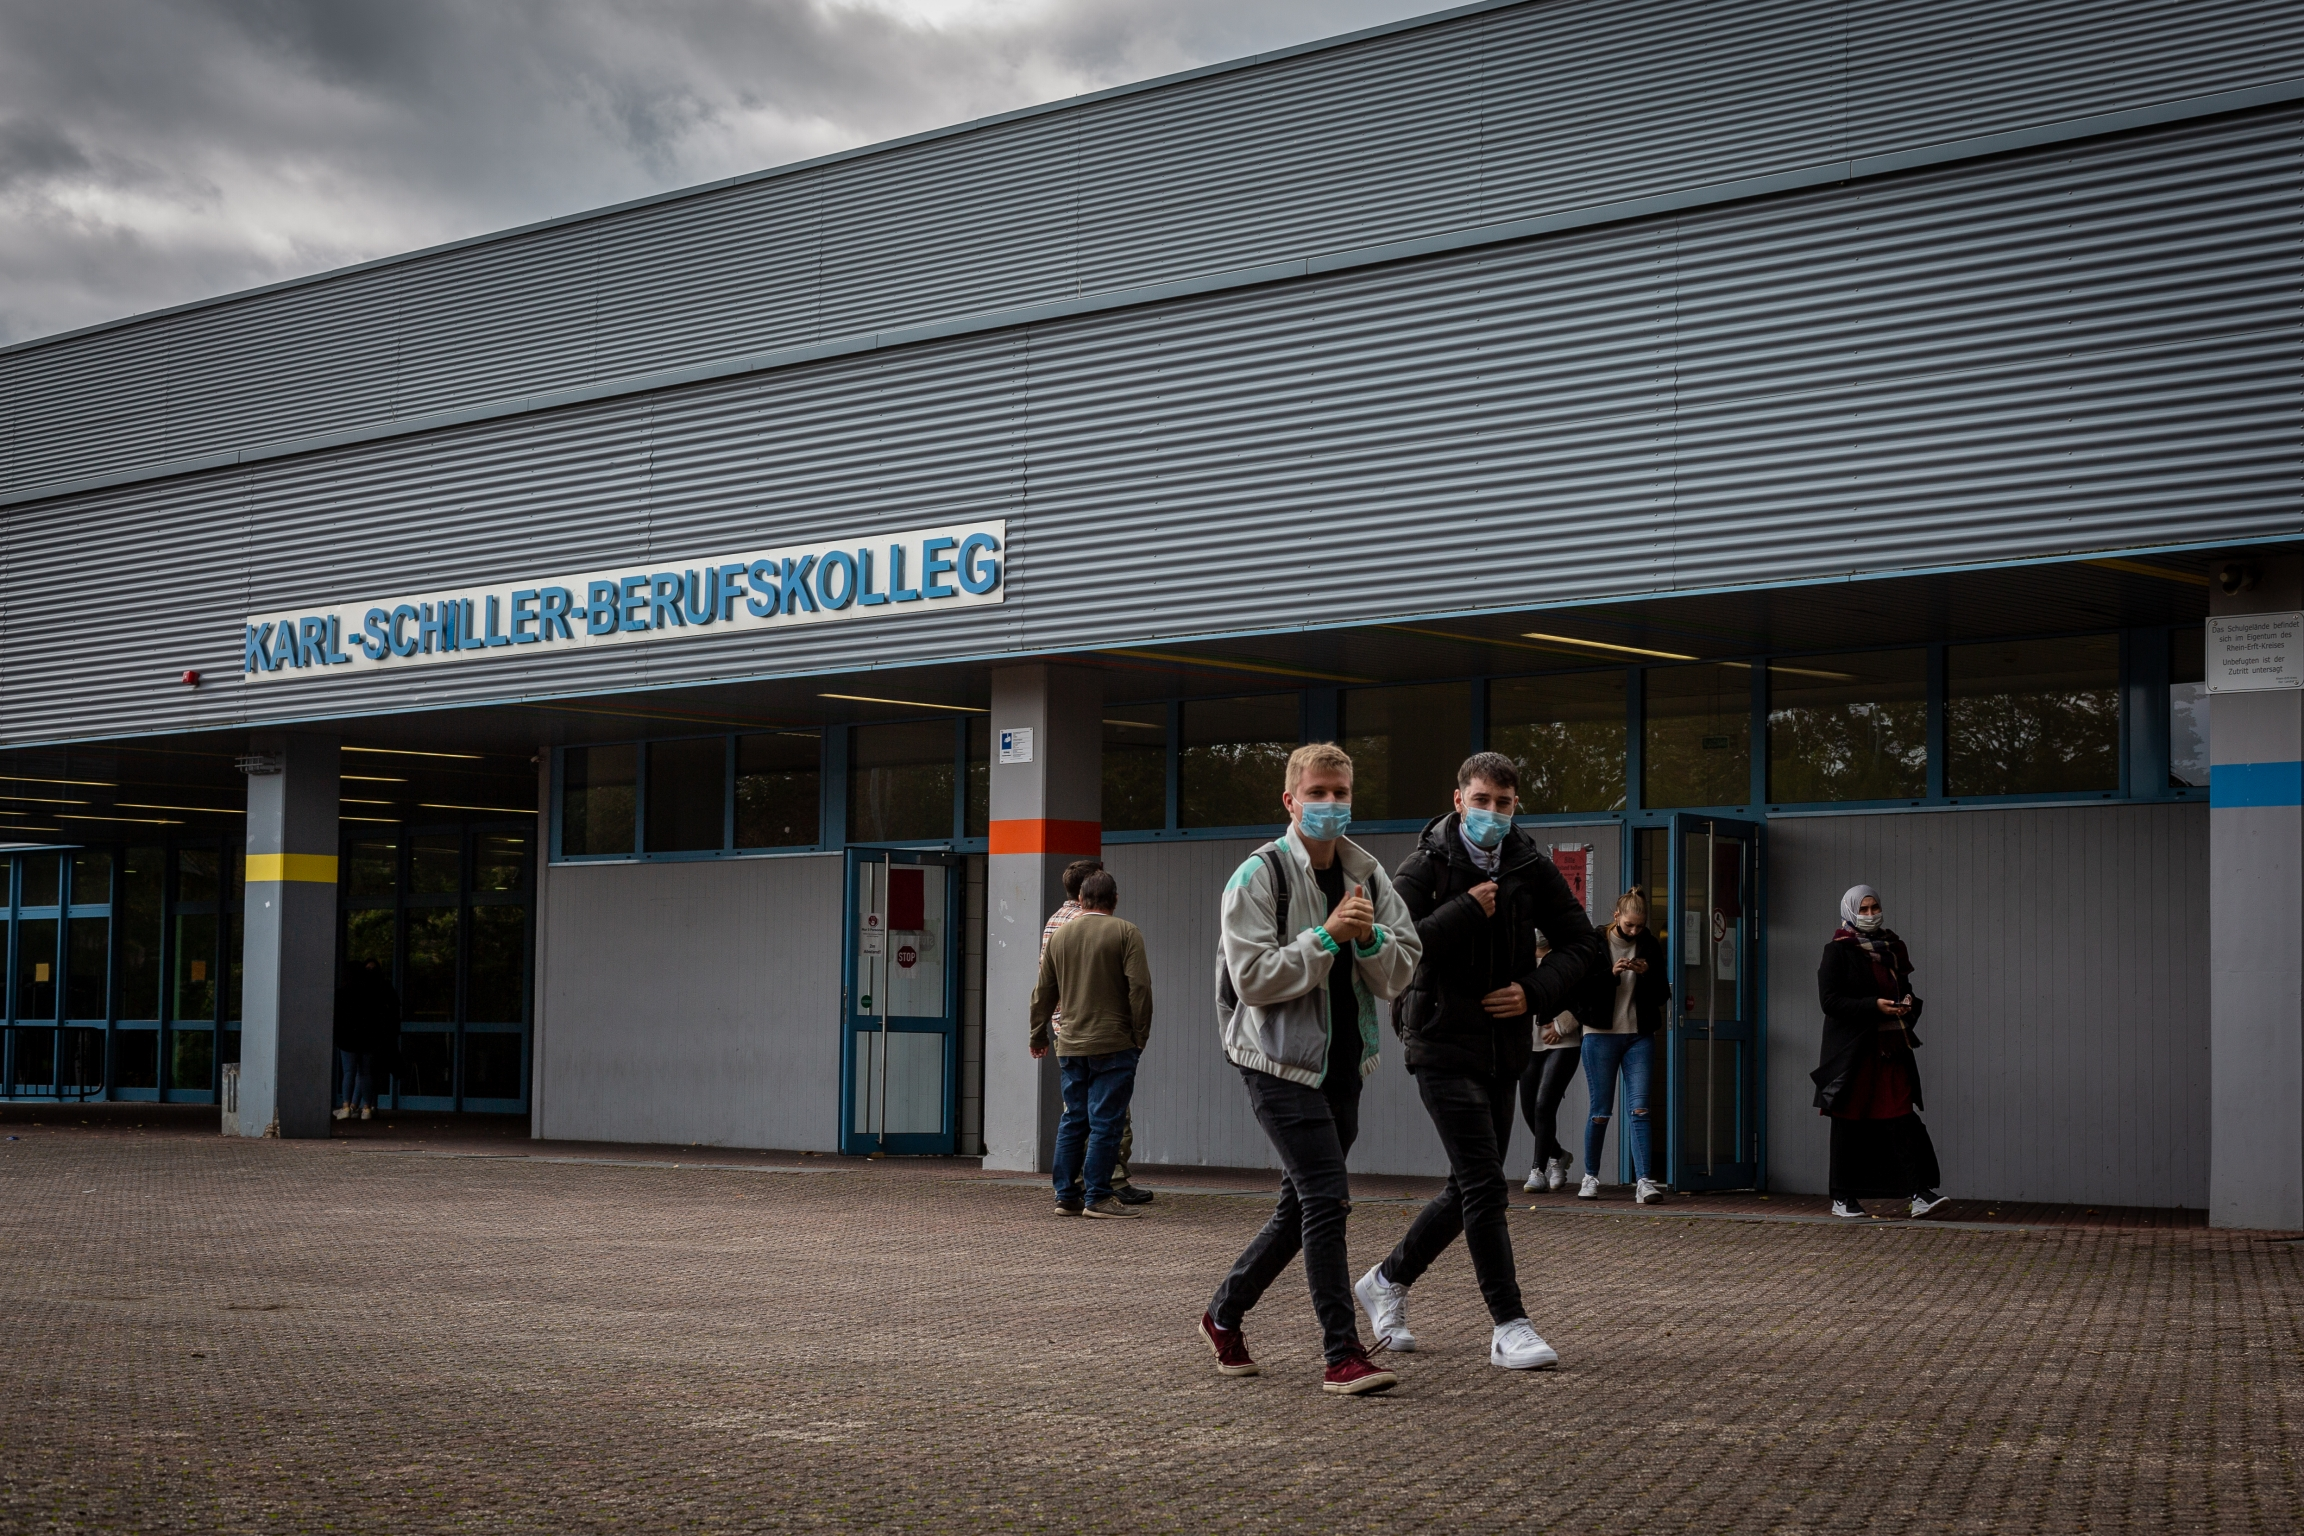 Students leave Karl-Schiller-Berufskolleg in Brühl, a  secondary school outside of Cologne, Germany. Students are required by the school to wear masks on schools grounds.